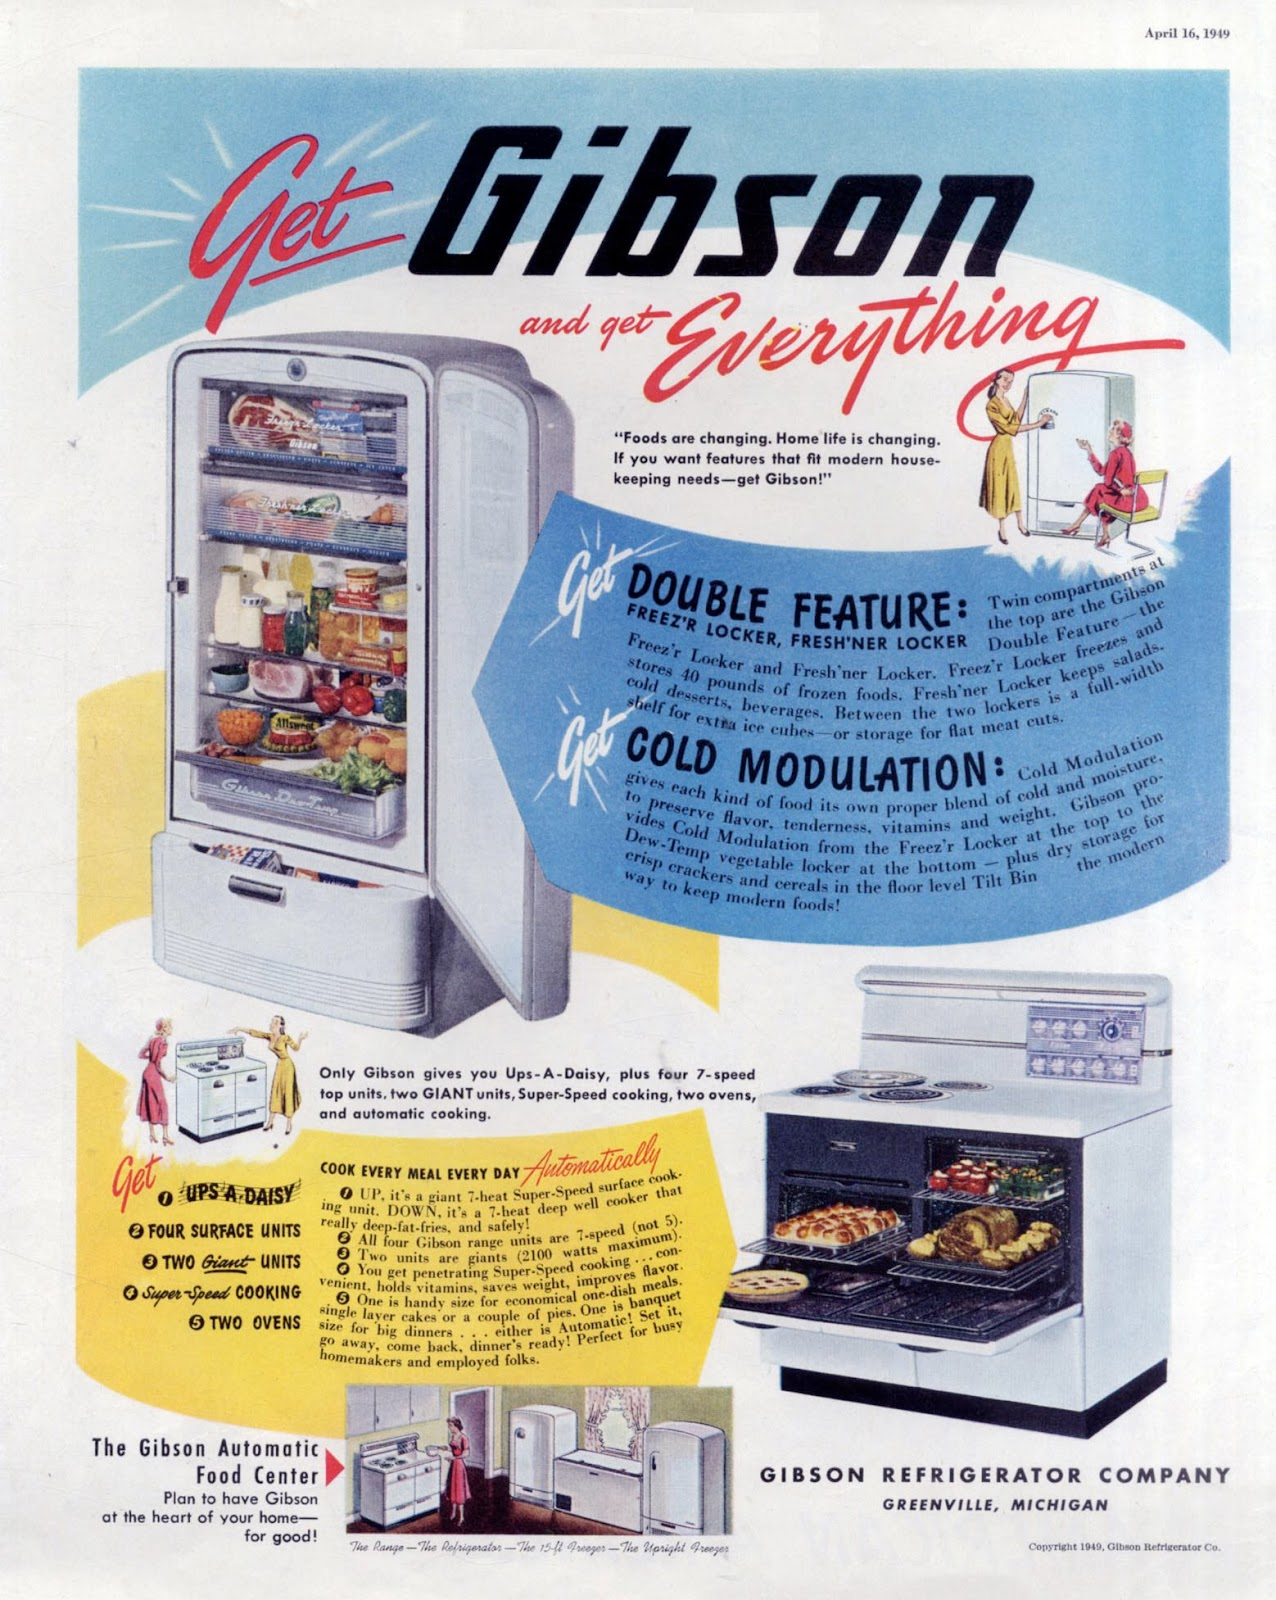 The Visual Primer of Advertising Cliches : Get Gibson and